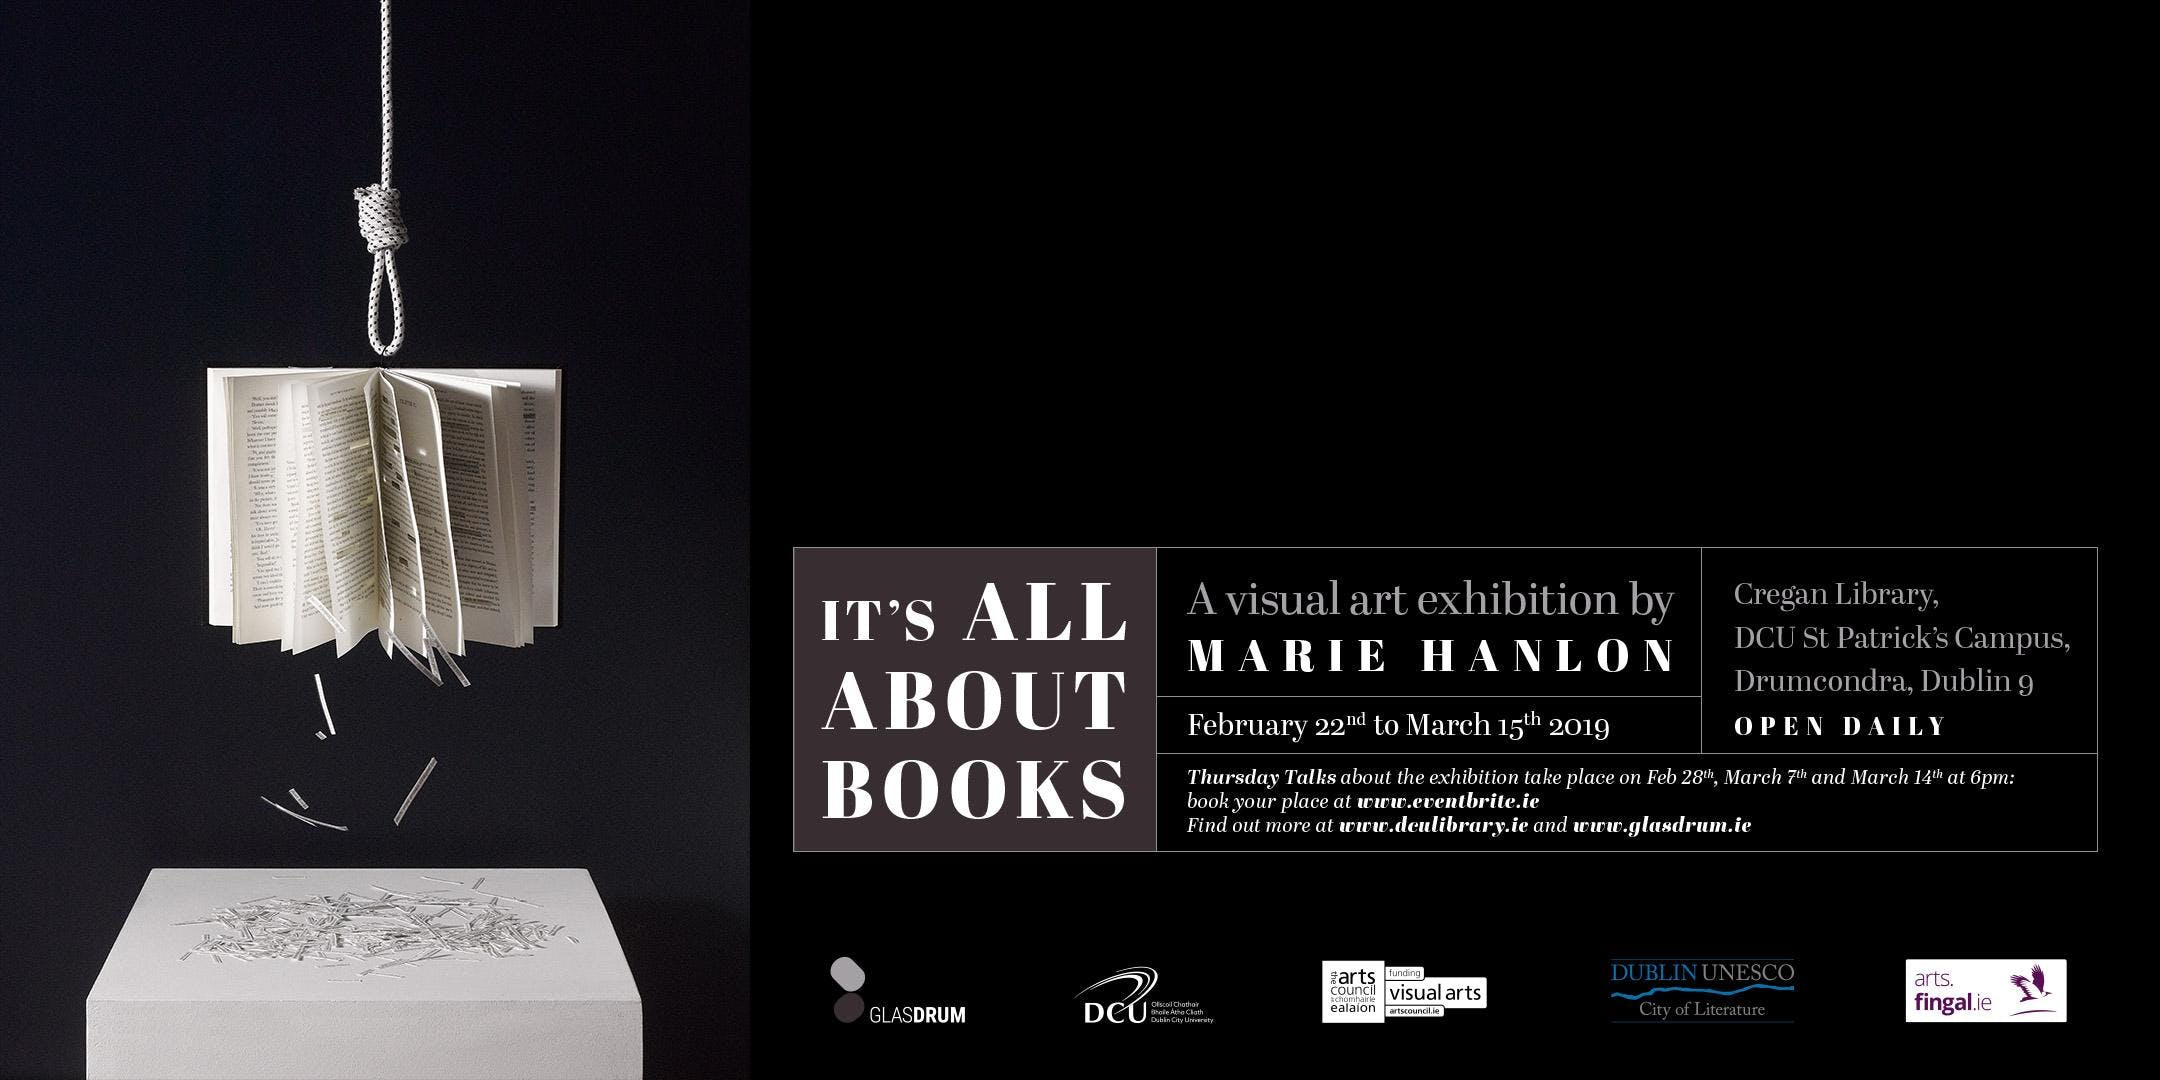 ITS ALL ABOUT BOOKS: an exhibition by visual artist Marie Hanlon